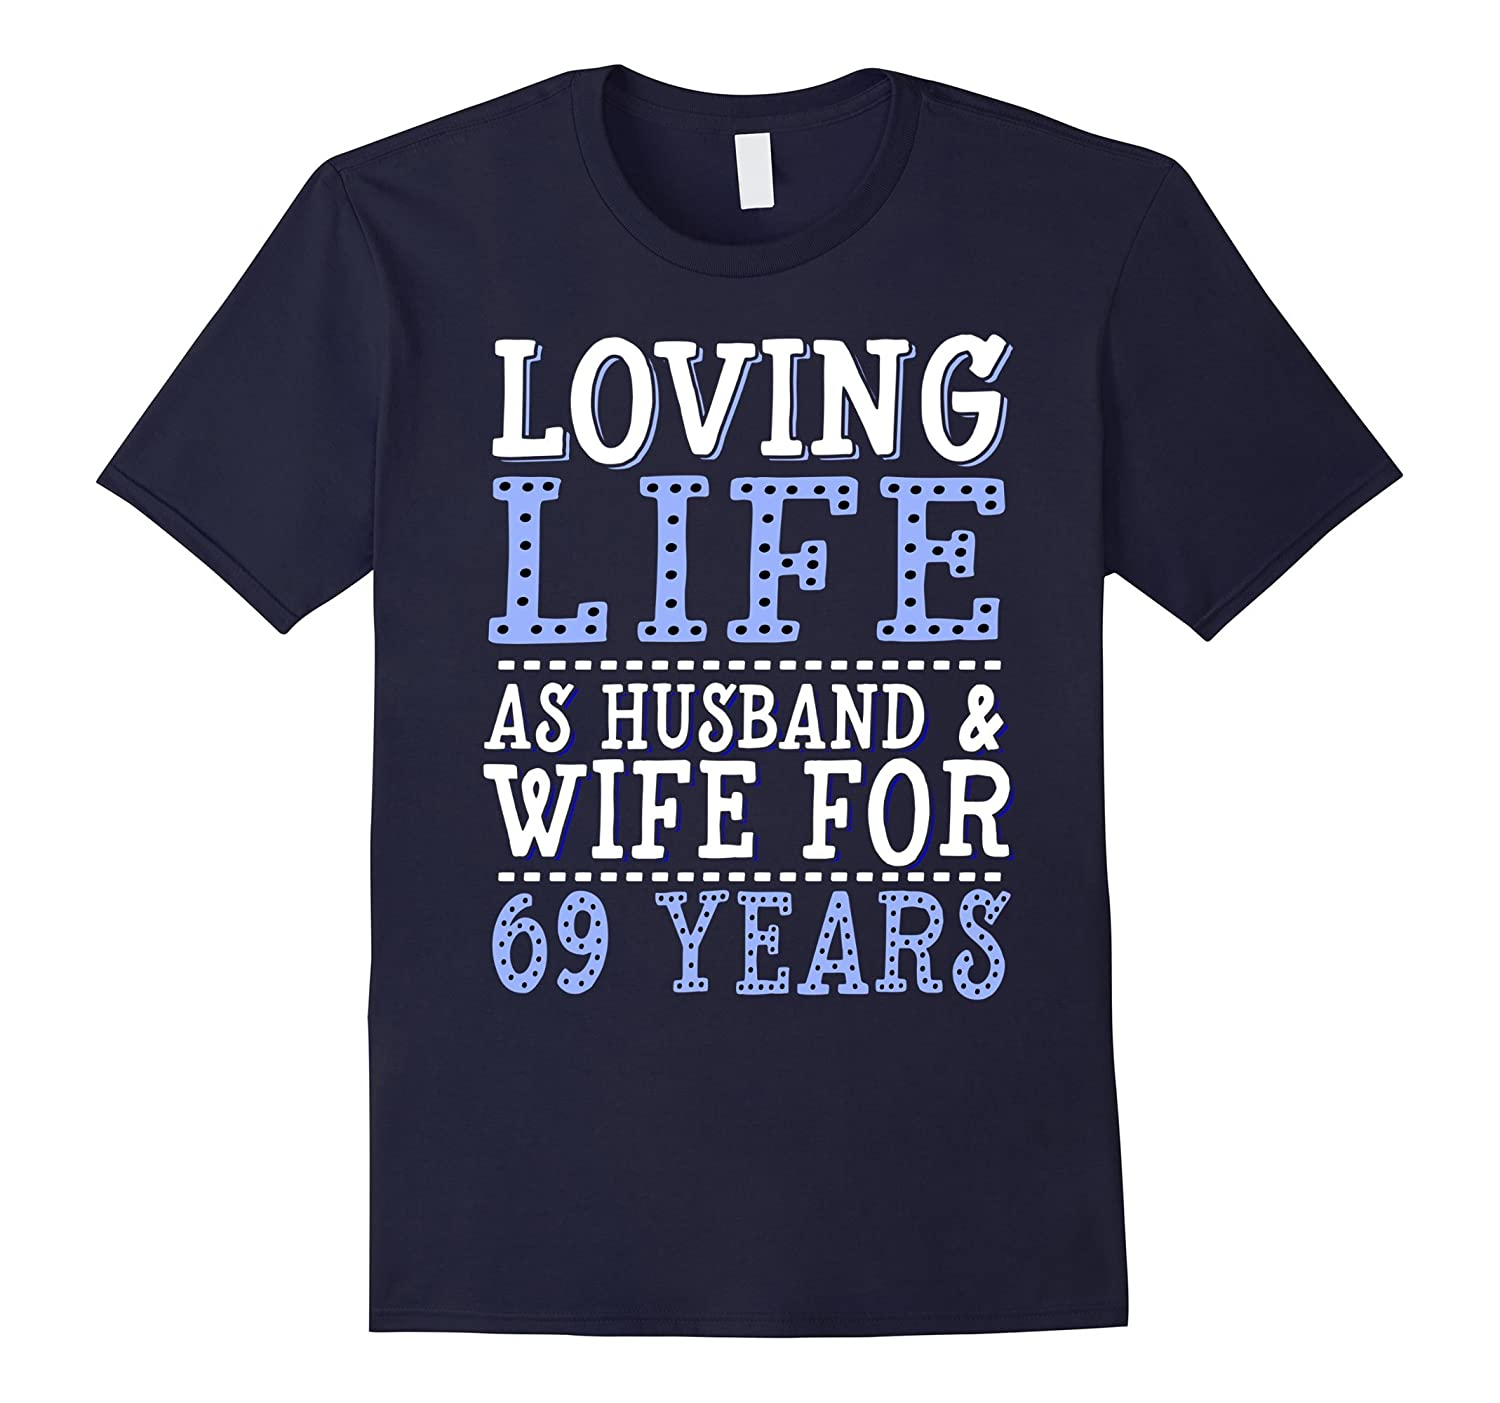 69 Year Anniversary Shirt - Loving Life as Husband and Wife-FL